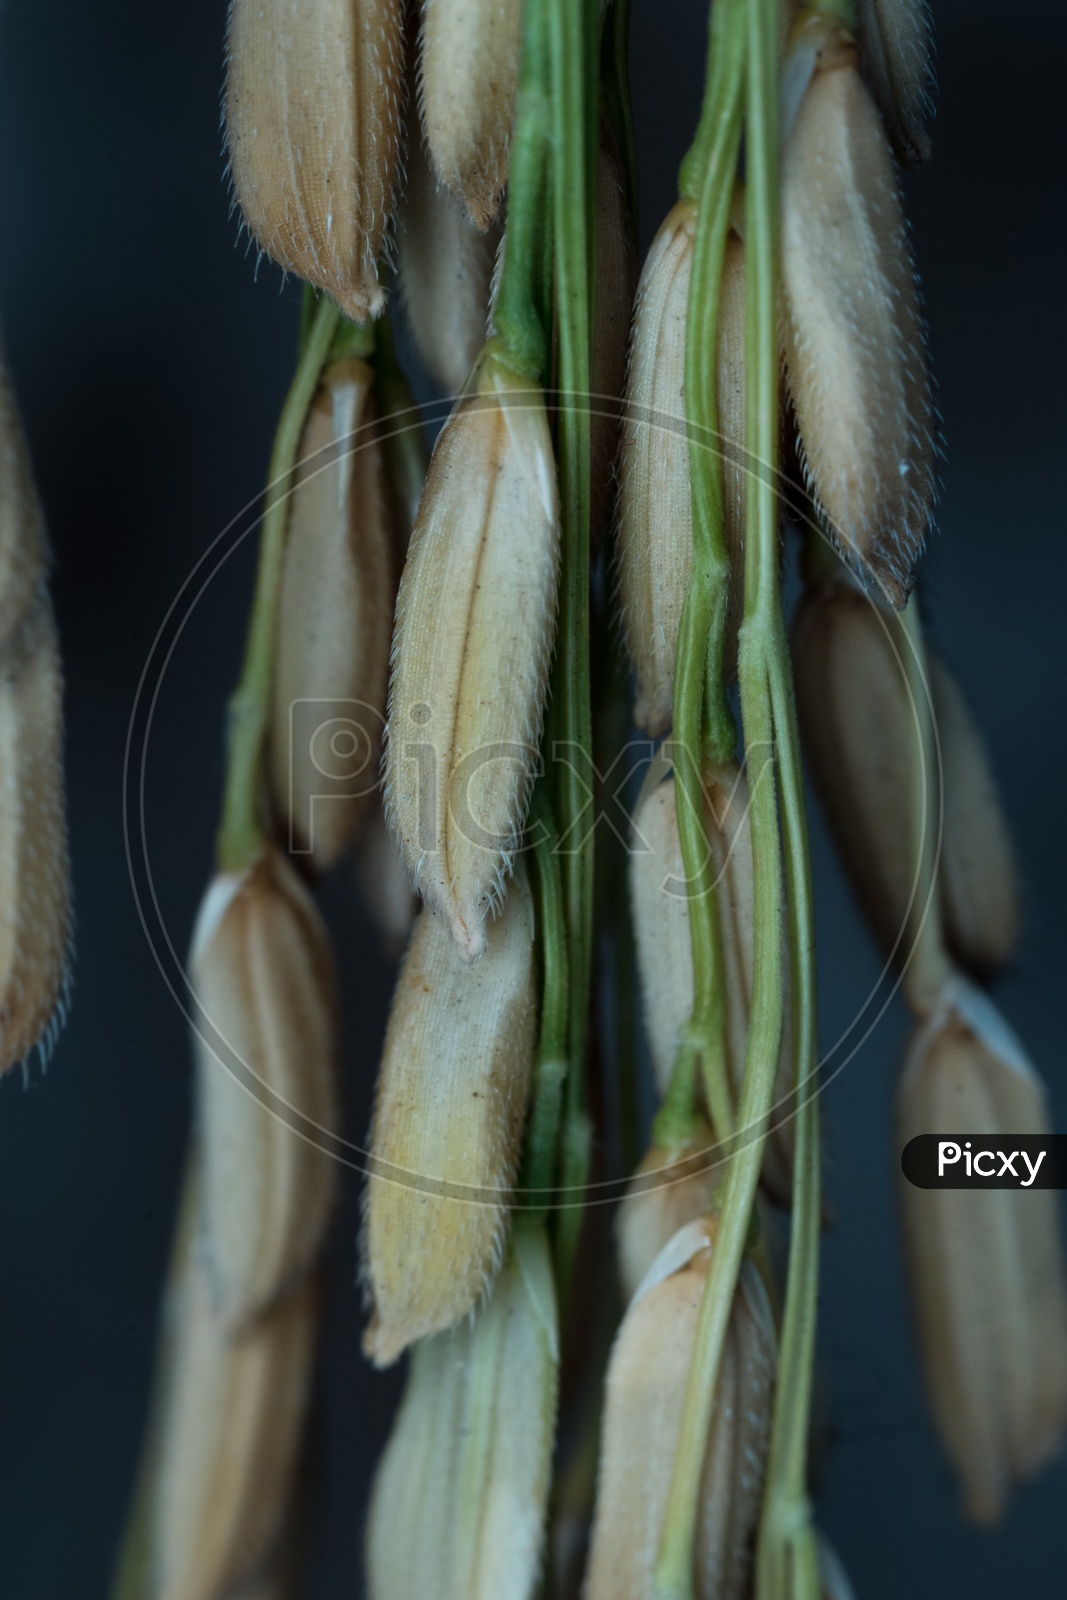 Paddy Grains Called As Rice